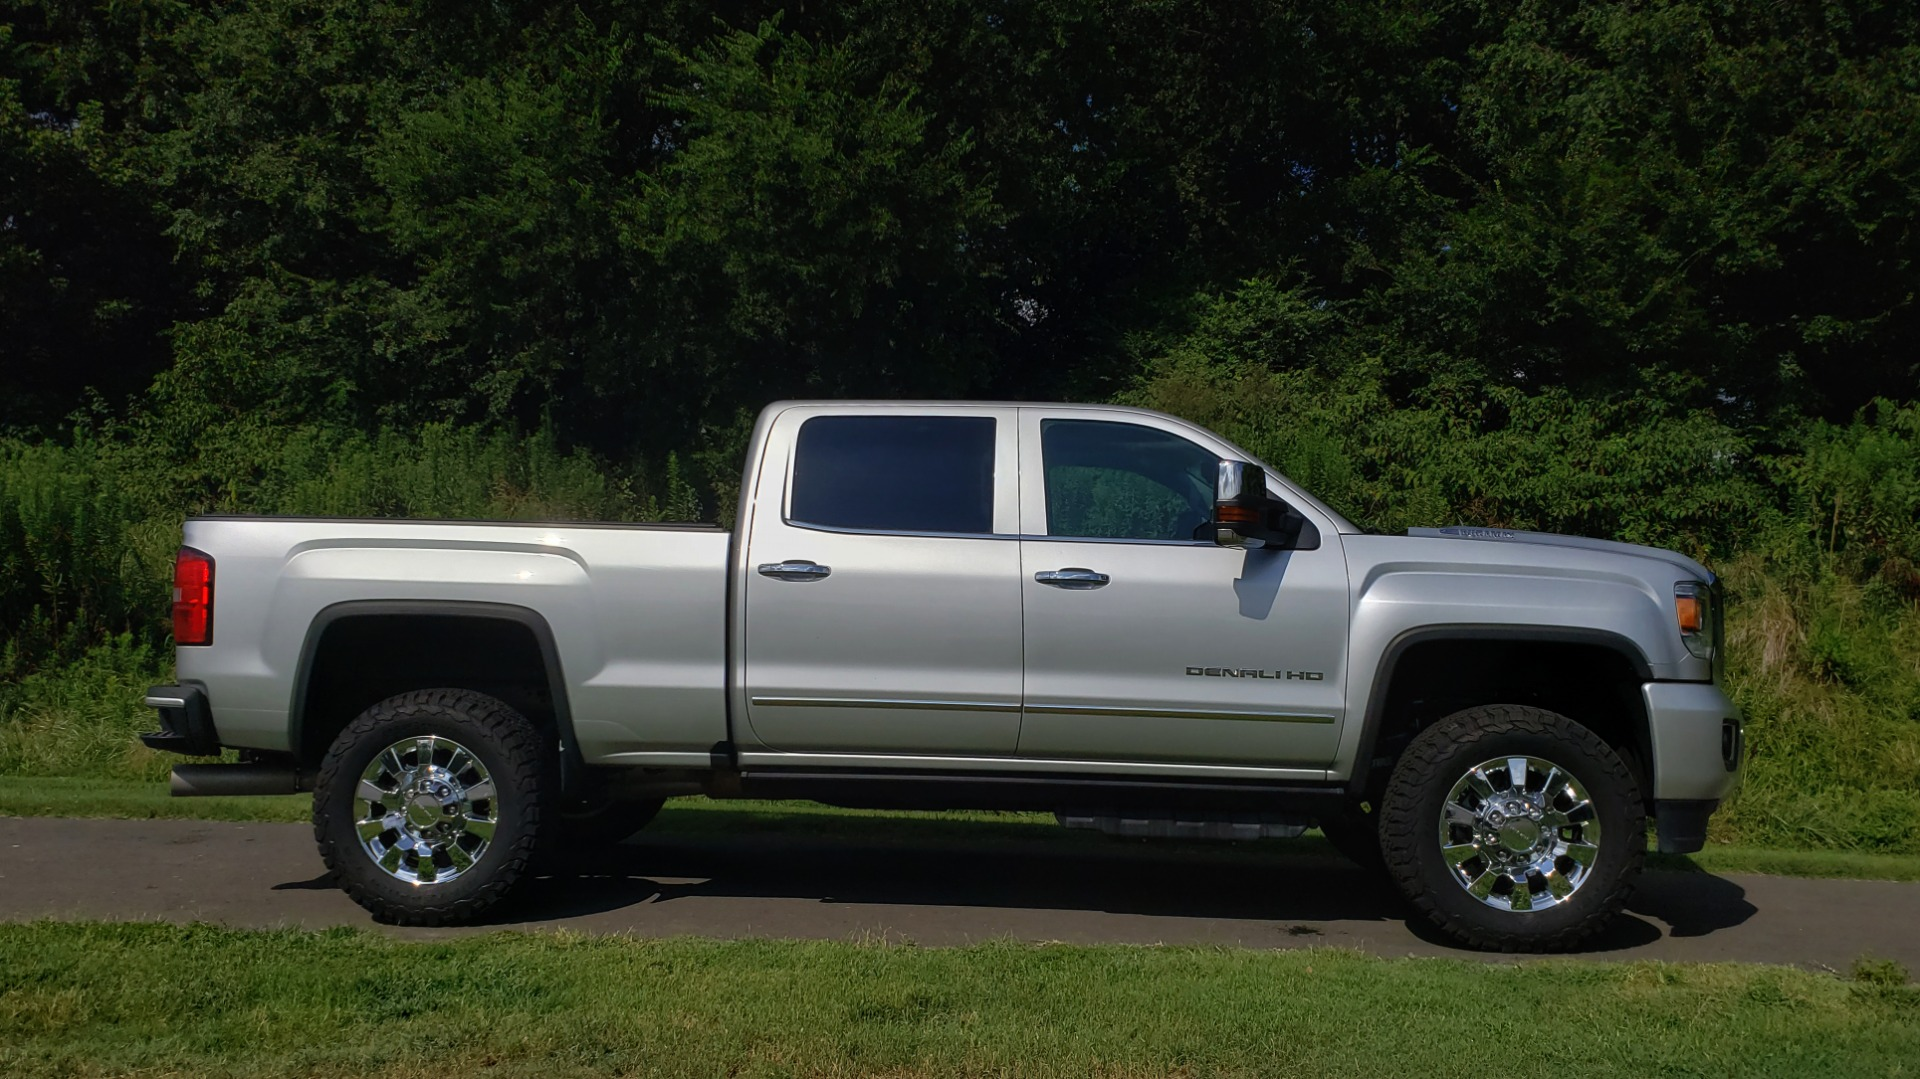 Used 2018 GMC SIERRA 2500HD DENALI 4WD / 6.6L DURAMAX / NAV / SUNROOF / BOSE / REARVIEW for sale Sold at Formula Imports in Charlotte NC 28227 13